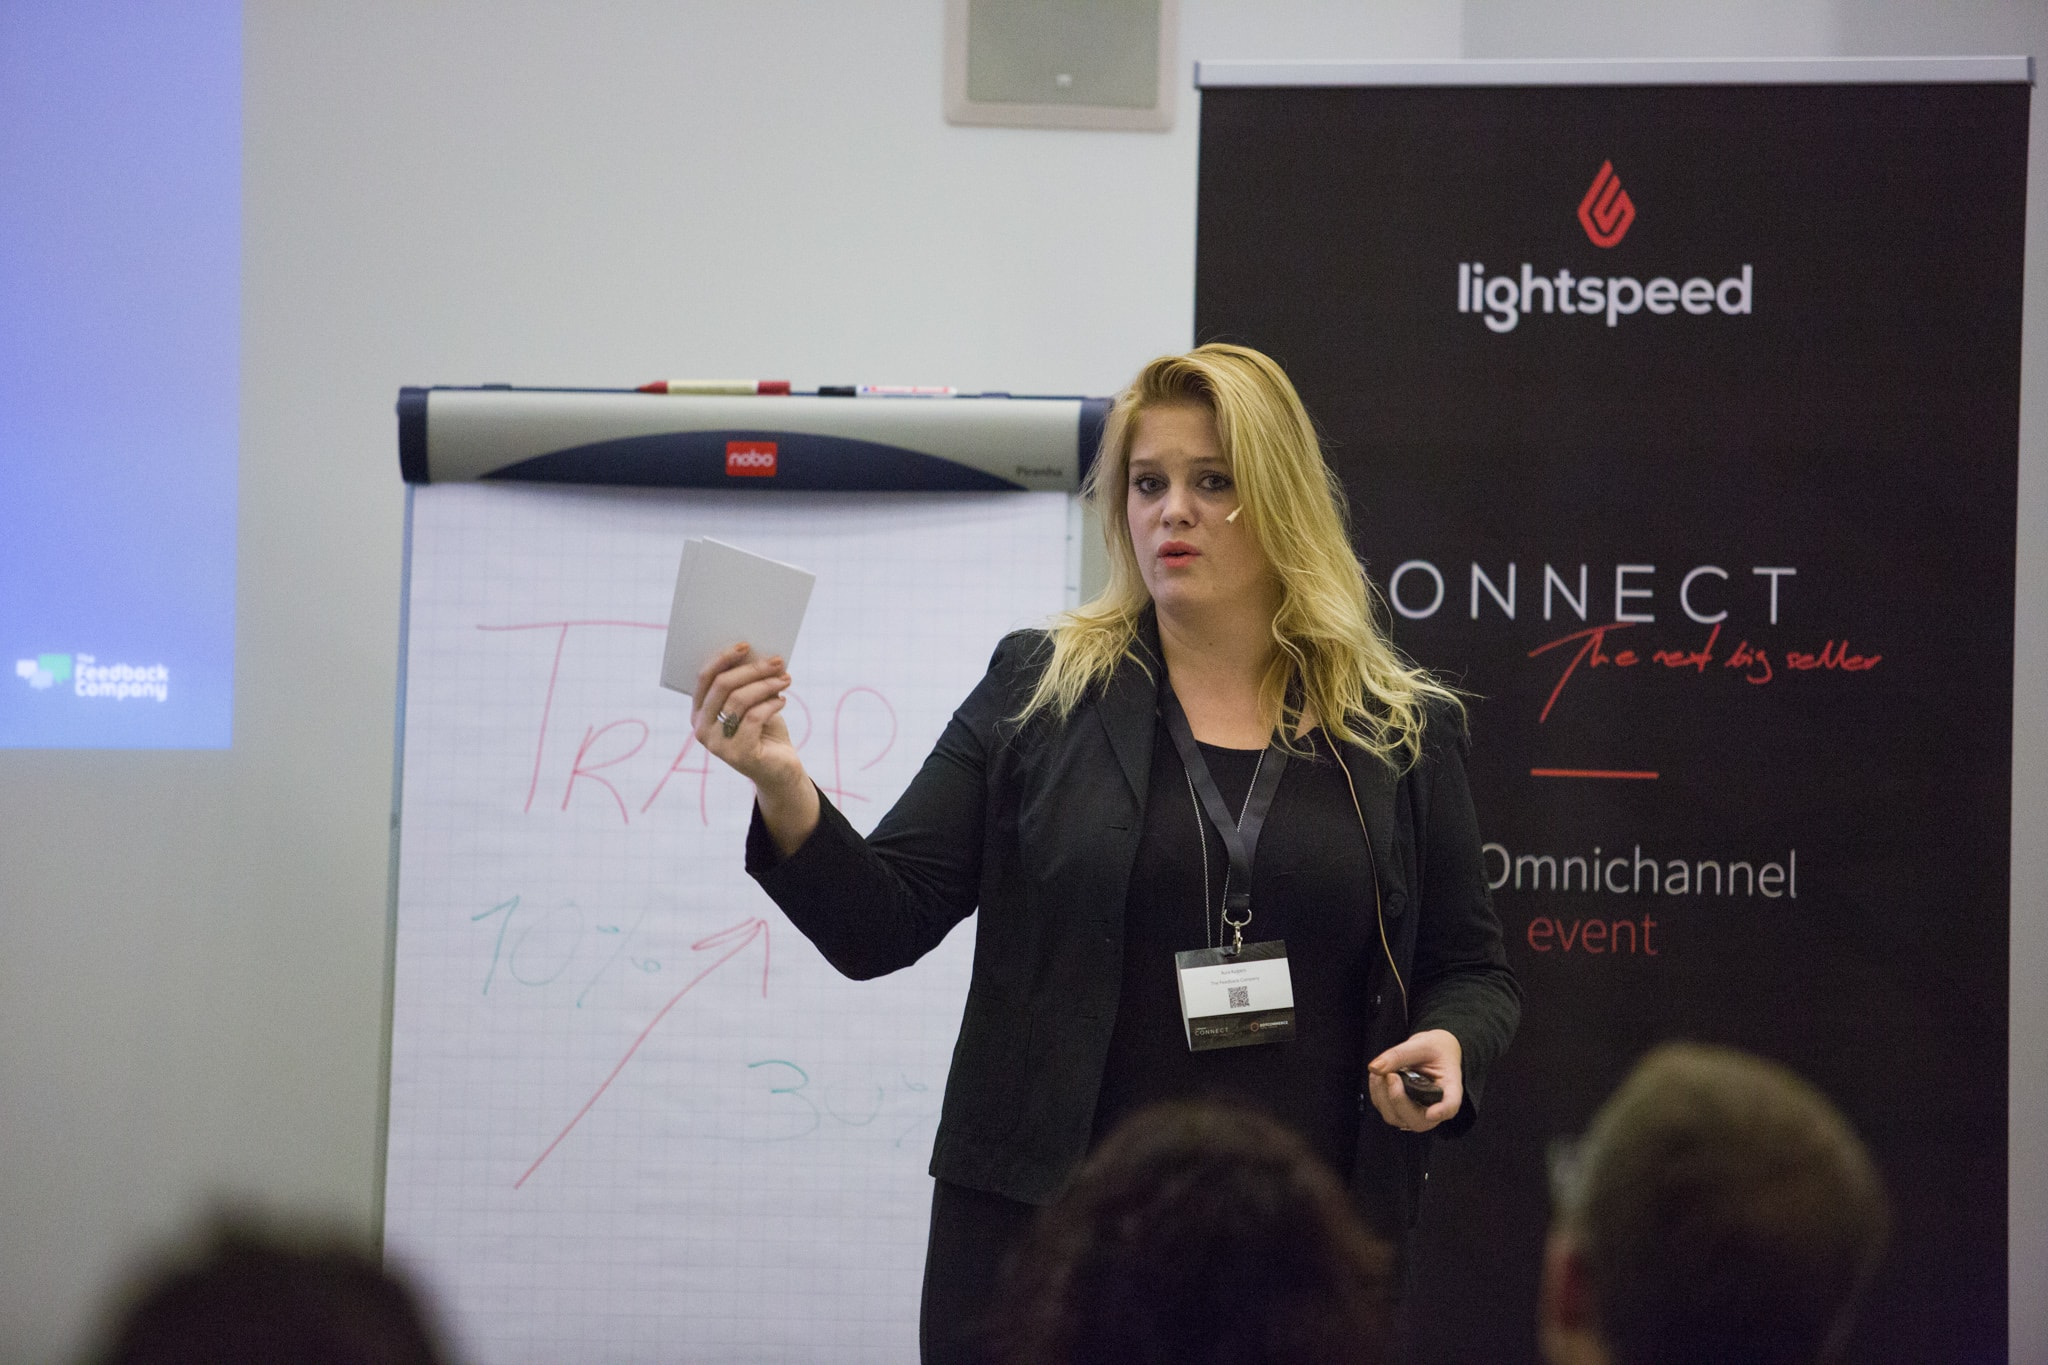 Lightspeed Connect partner sessie